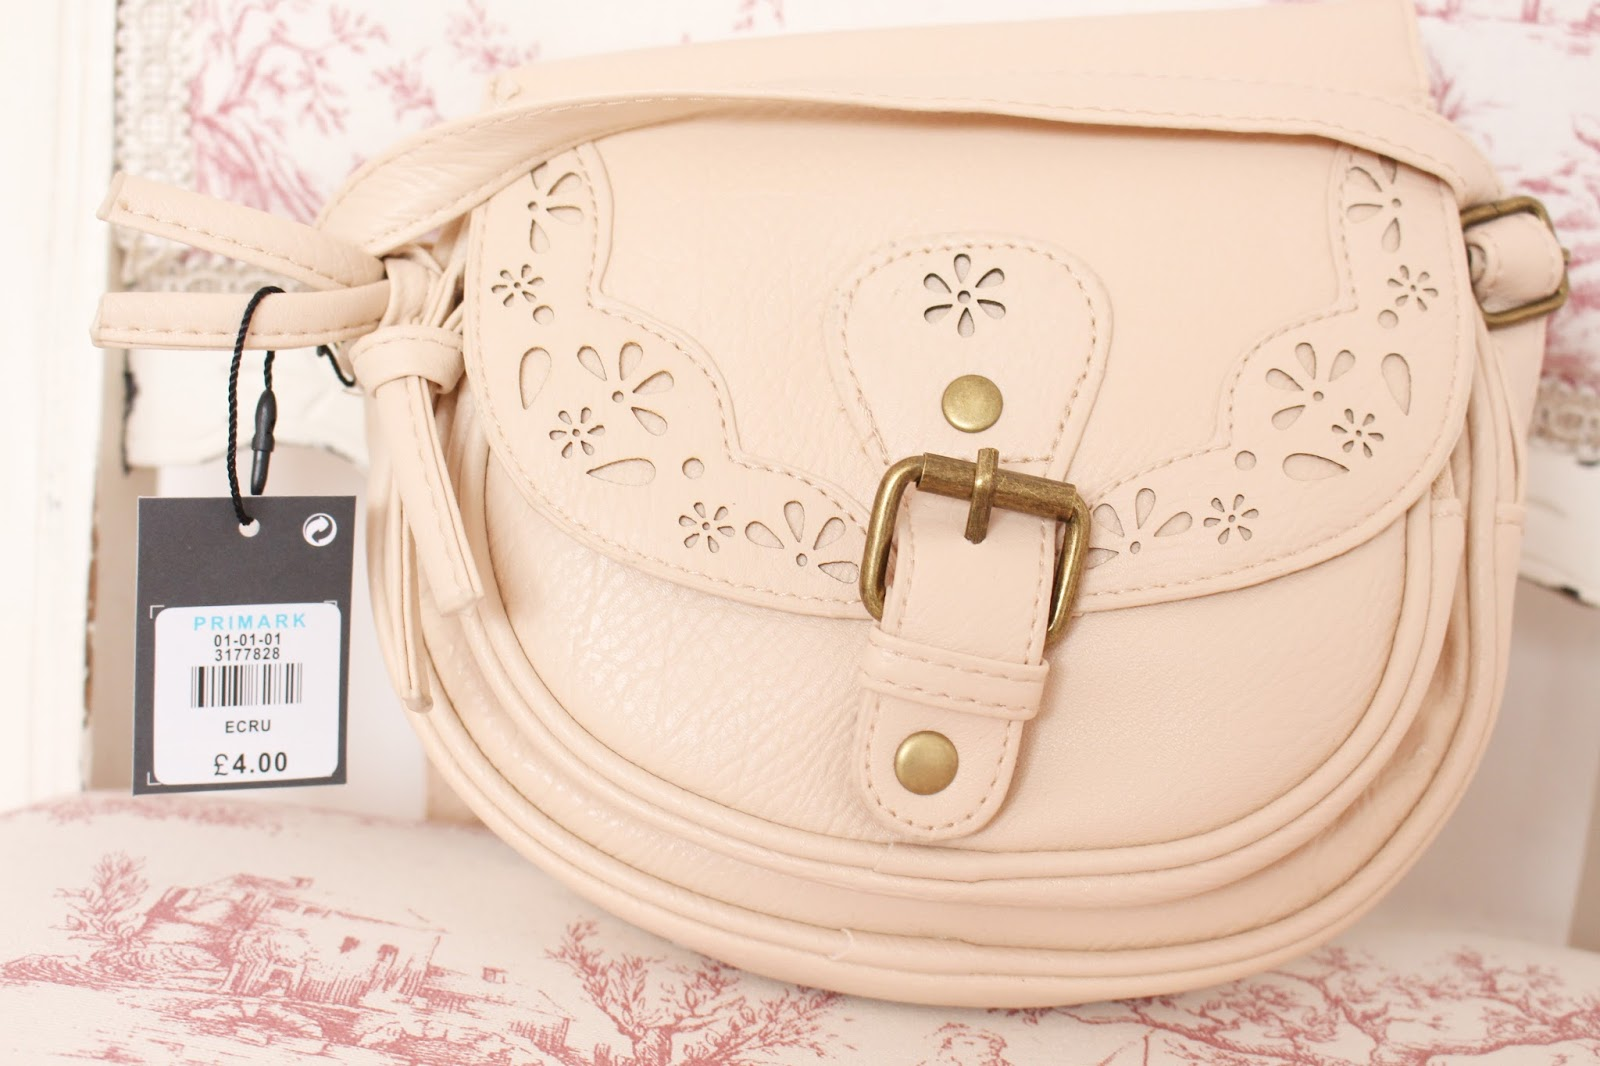 Summer Primark Haul April 2014 Cream Bag